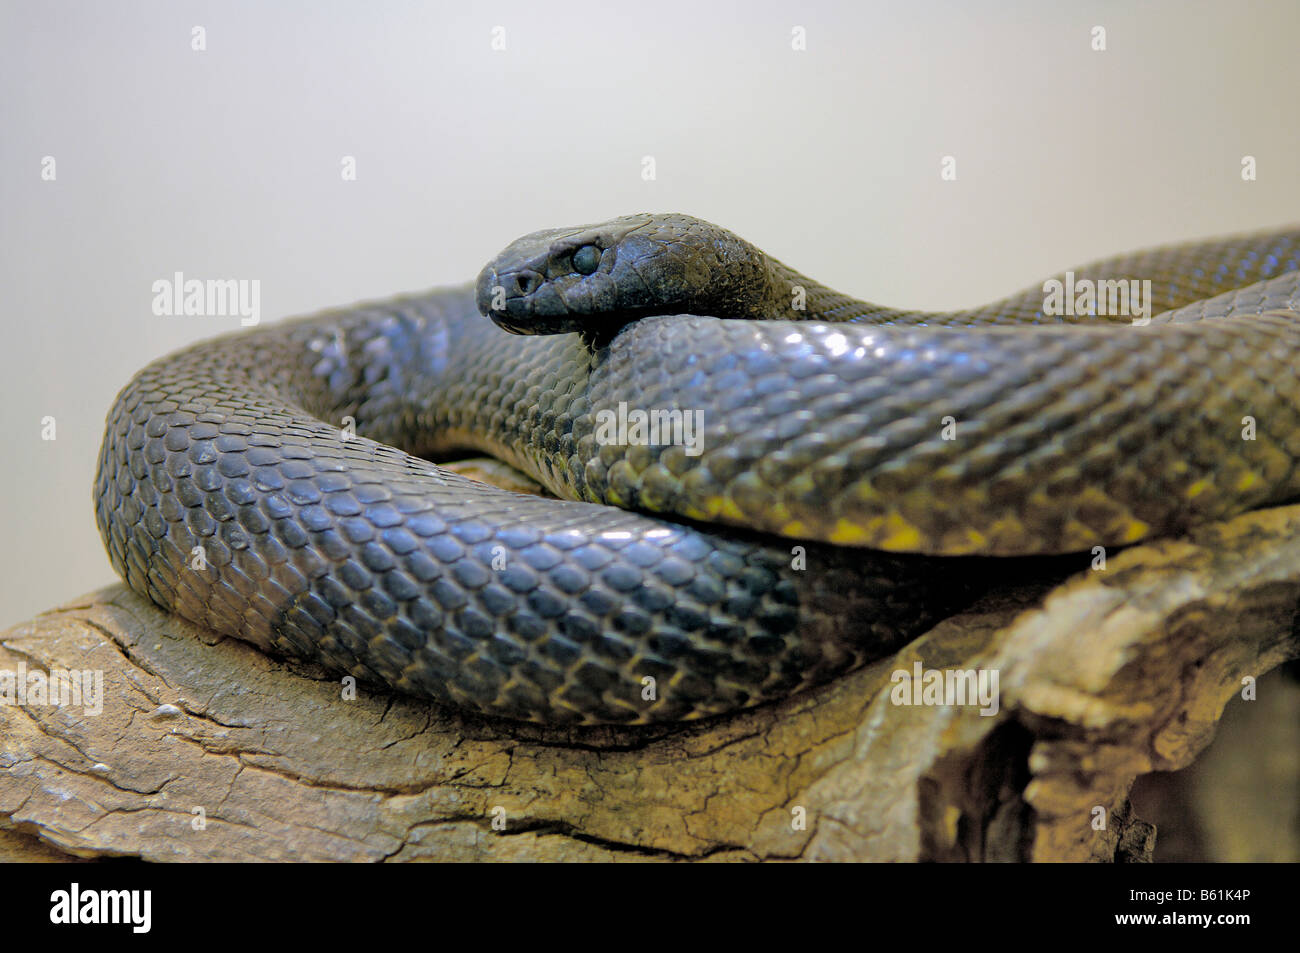 Inland Taipan, Small Scaled Snake, Fierce Snake (Oxyuranus microlepidotus), the most poisonous snake in the world - Stock Image